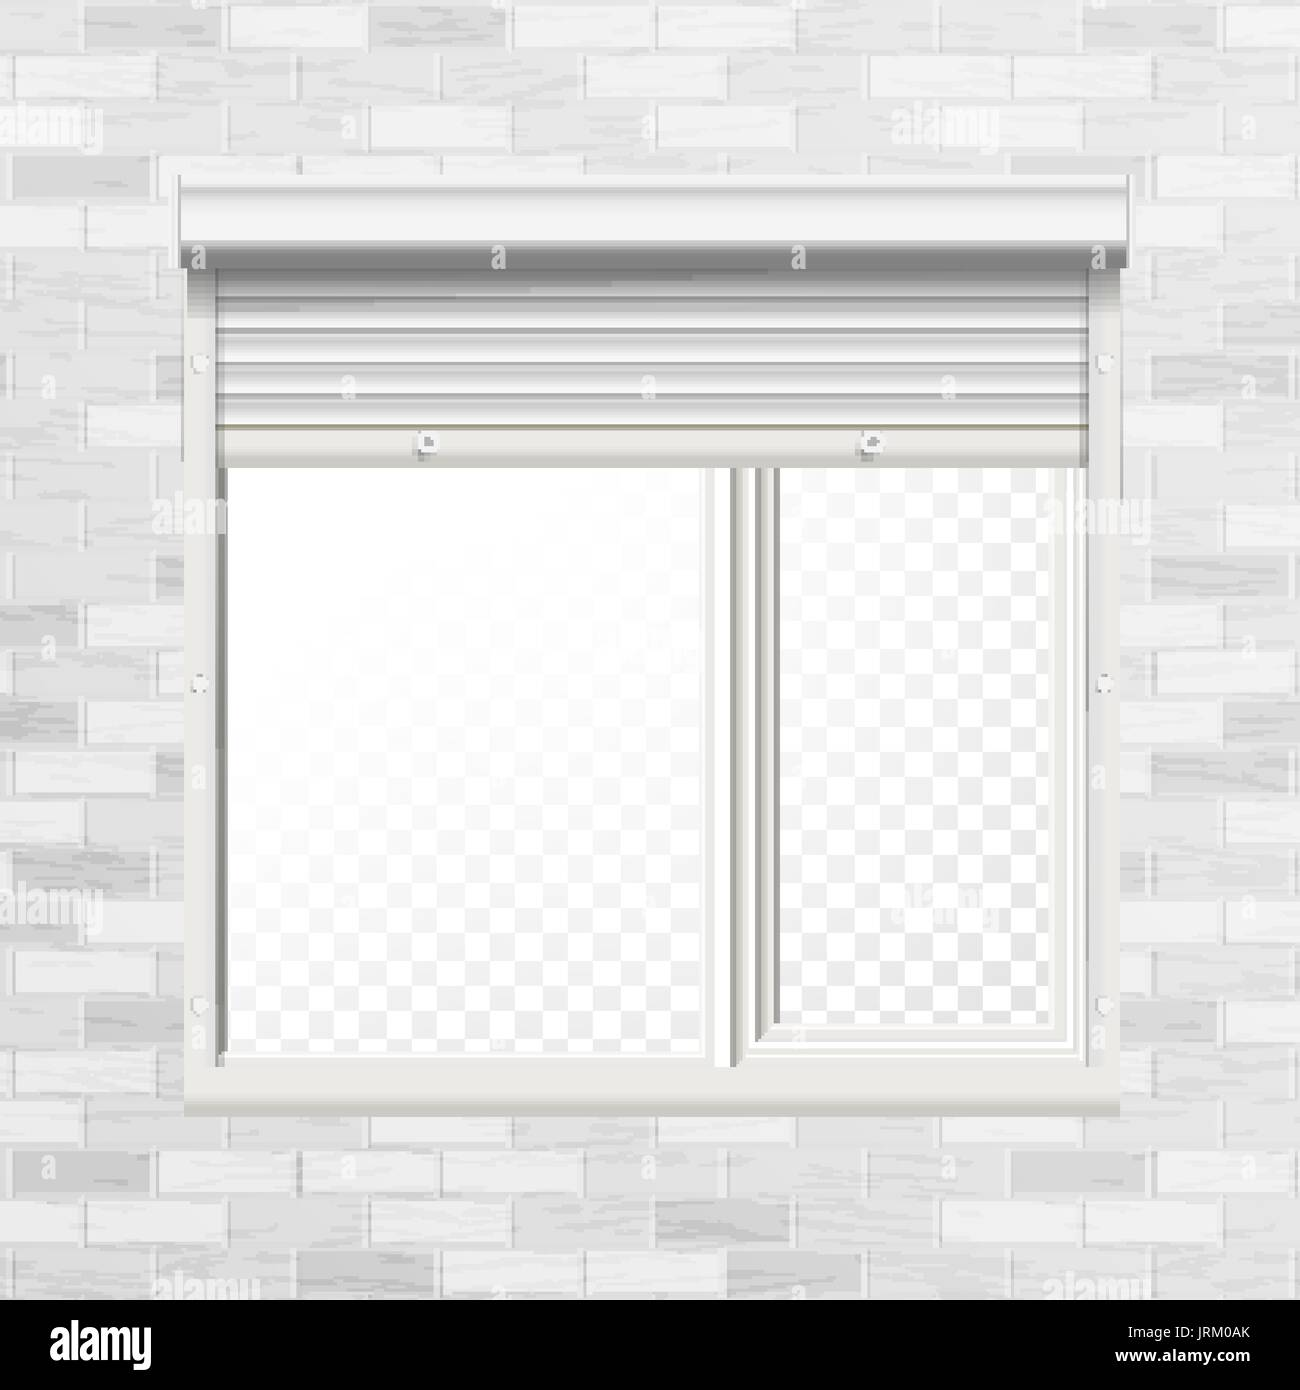 Window With Rolling Shutters Vector. Brick Wall. Front View. Illustration. - Stock Vector